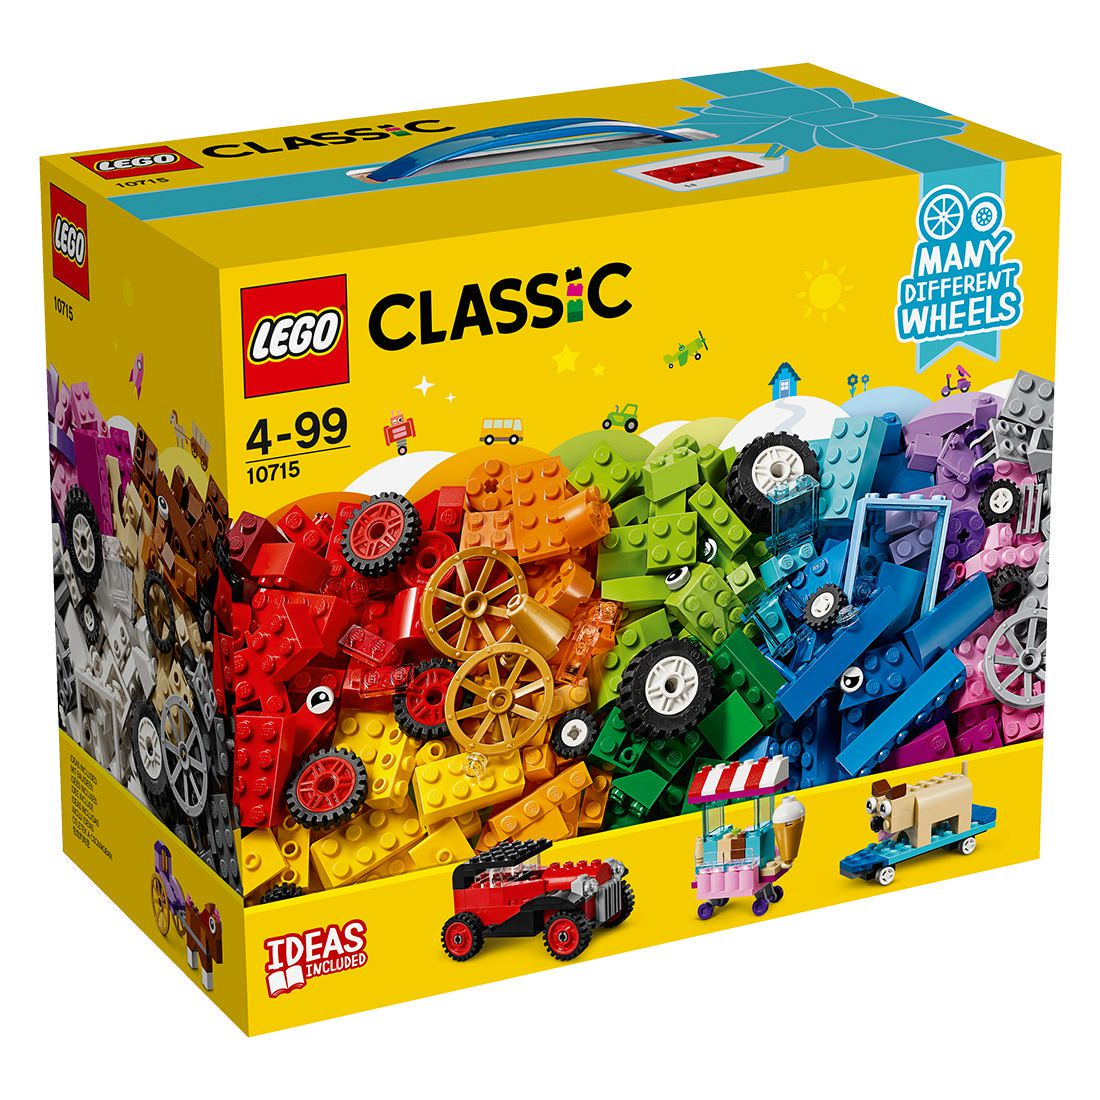 Classic Bricks on a Roll Construction Set, Colourful Vehicle Toy Bricks